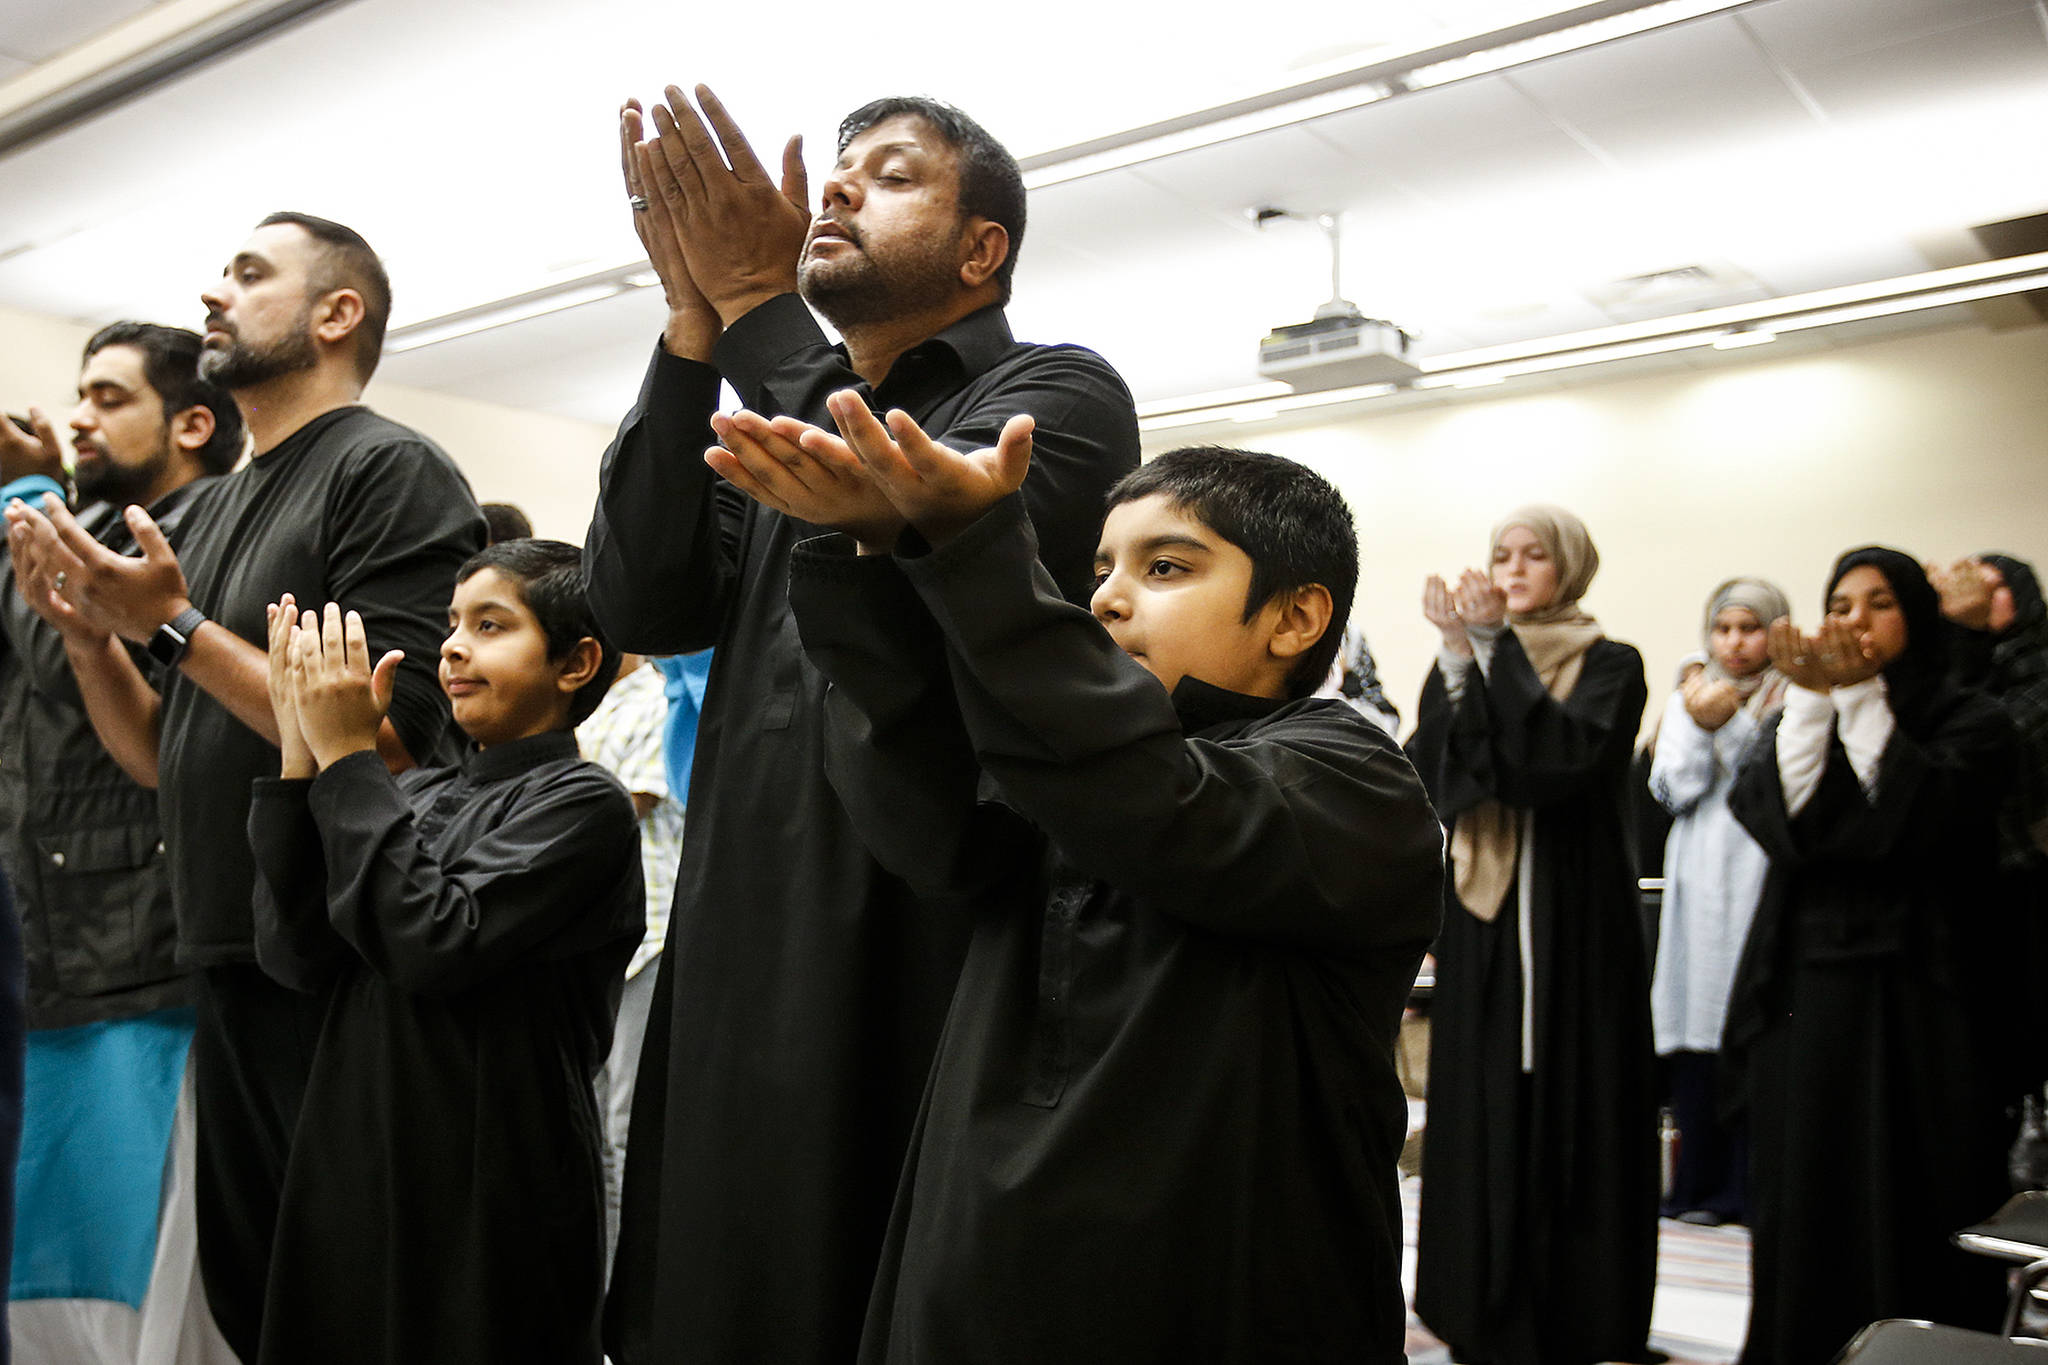 Ghulam Abbas (center) prays with his two sons Ammar (left), 8, and Ayaan, 8, during an evening service for the Zainab Center at the Lynnwood Convention Center on Thursday, Aug. 31. The center, which serves Shiite Muslims, is temporarily using the convention center's facilities while they await permits to begin repairing their water-damaged building in Lynnwood. (Ian Terry / The Herald)